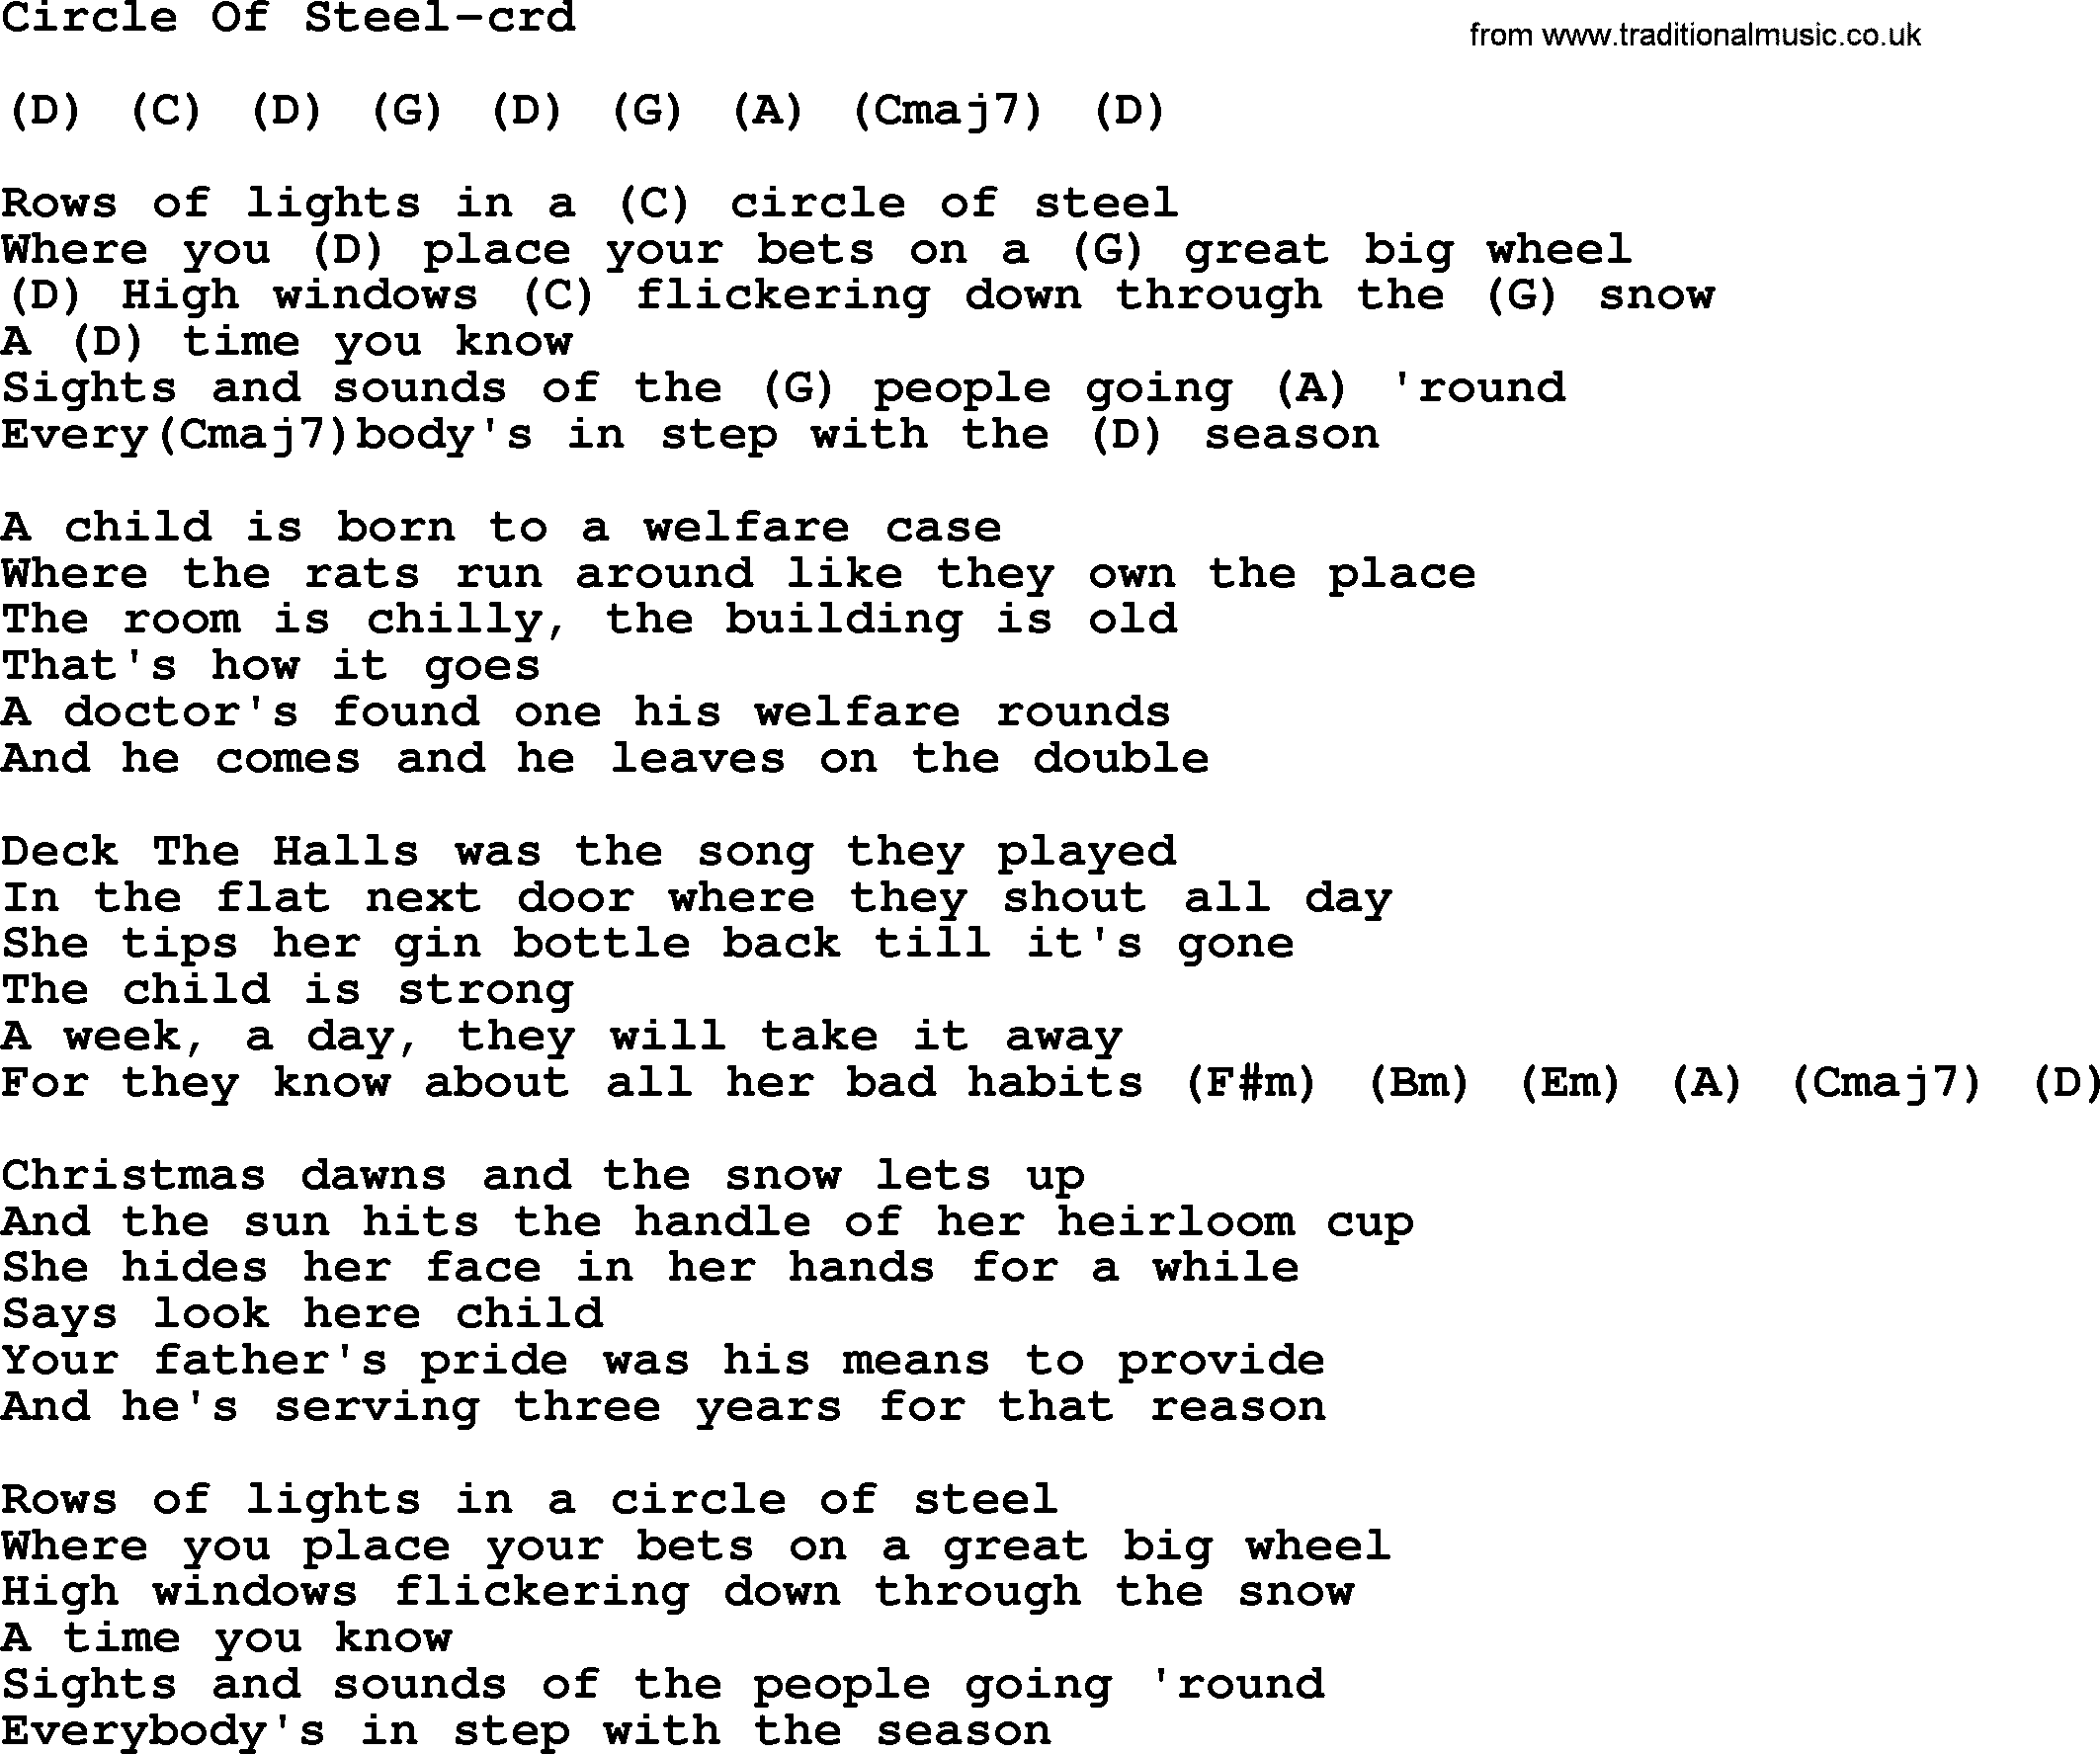 Circle of steel by gordon lightfoot lyrics and chords gordon lightfoot song circle of steel lyrics and chords hexwebz Image collections